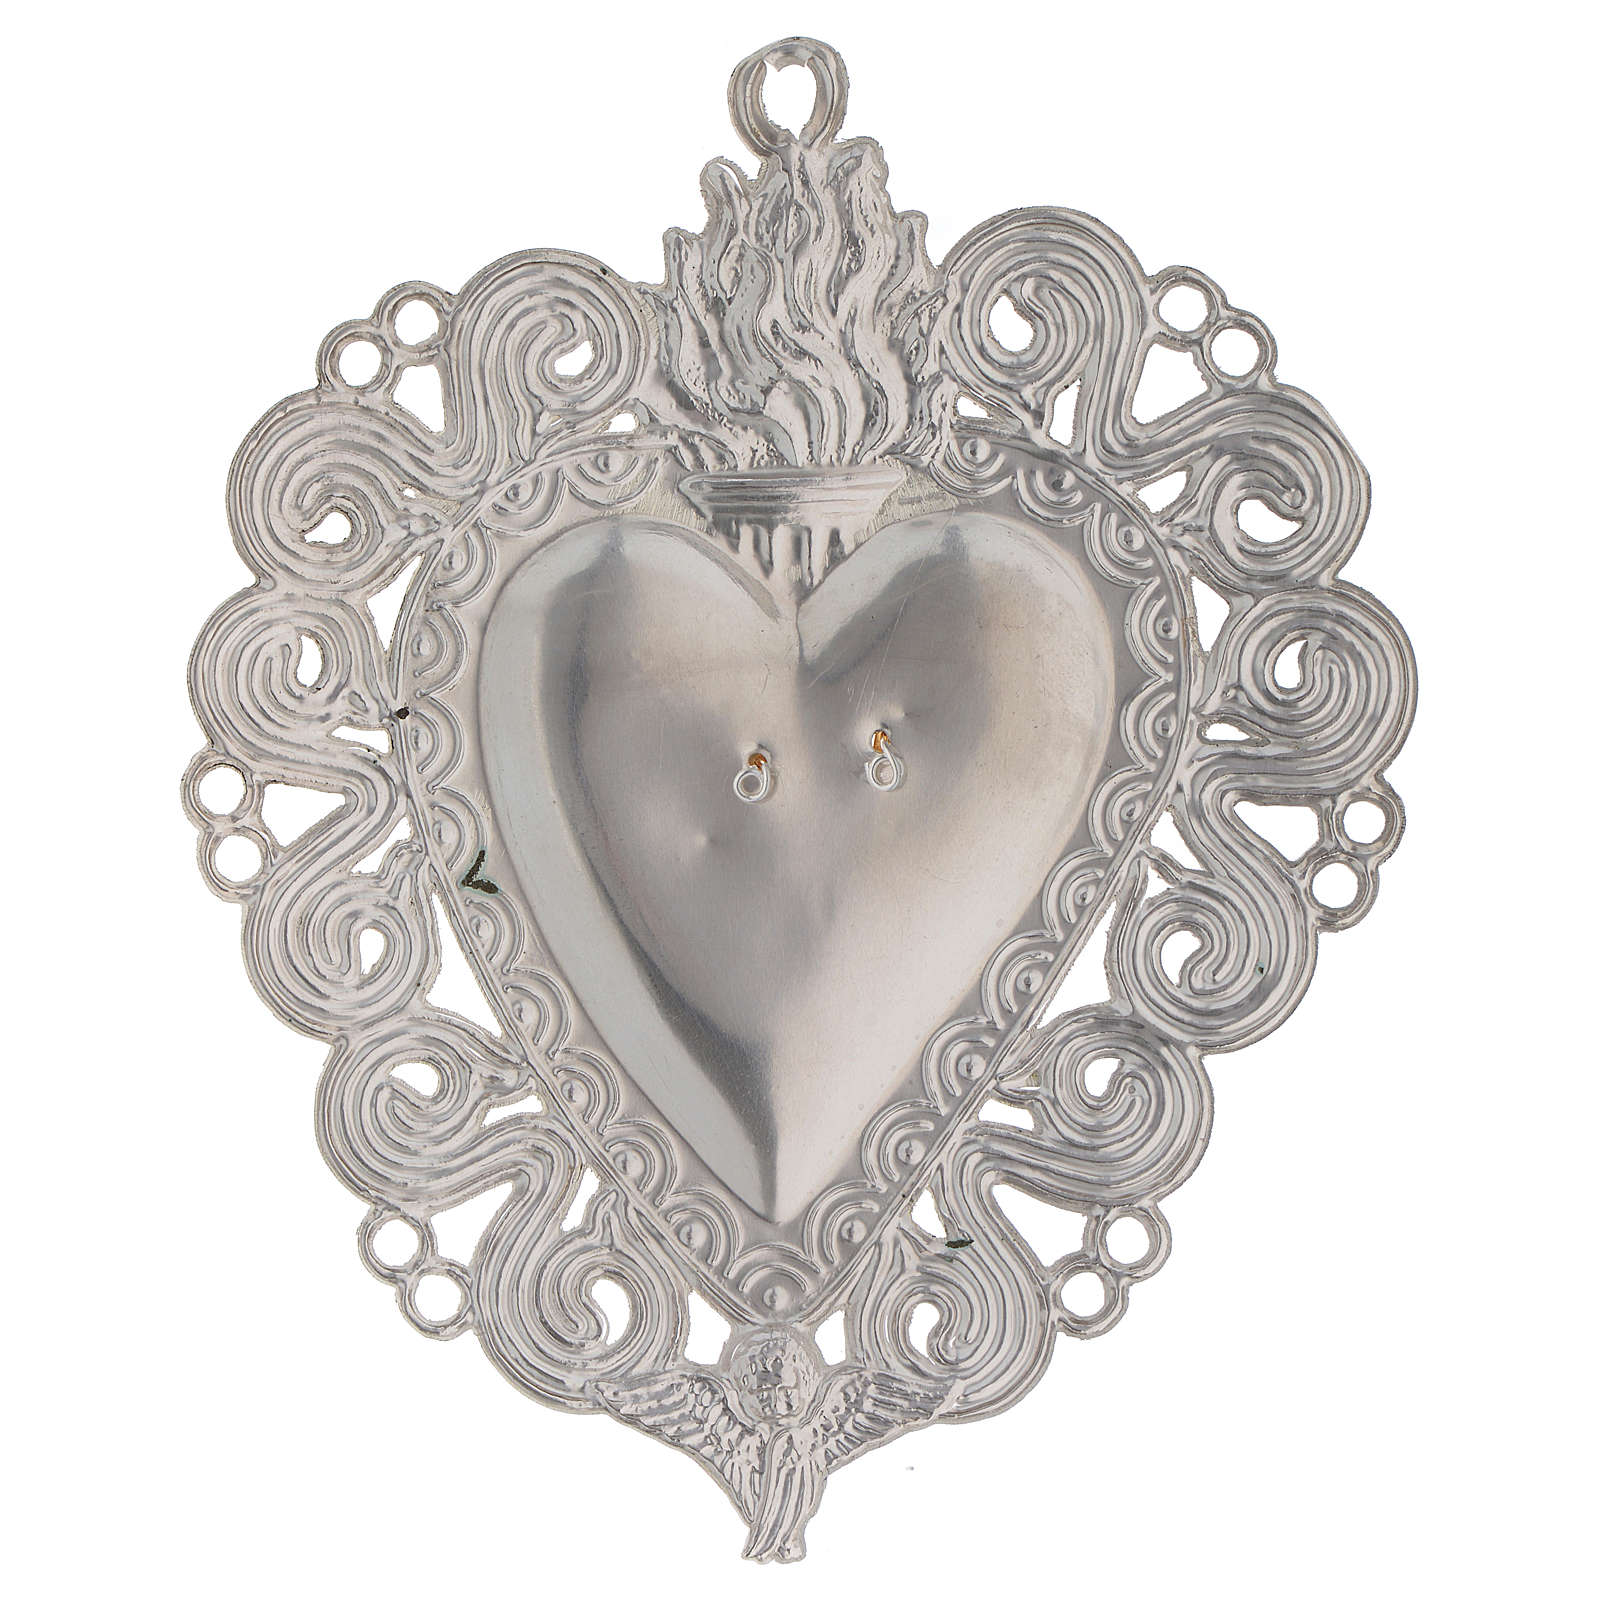 Ex-voto, Votive heart with flame and angel 11.5x8.5cm 3